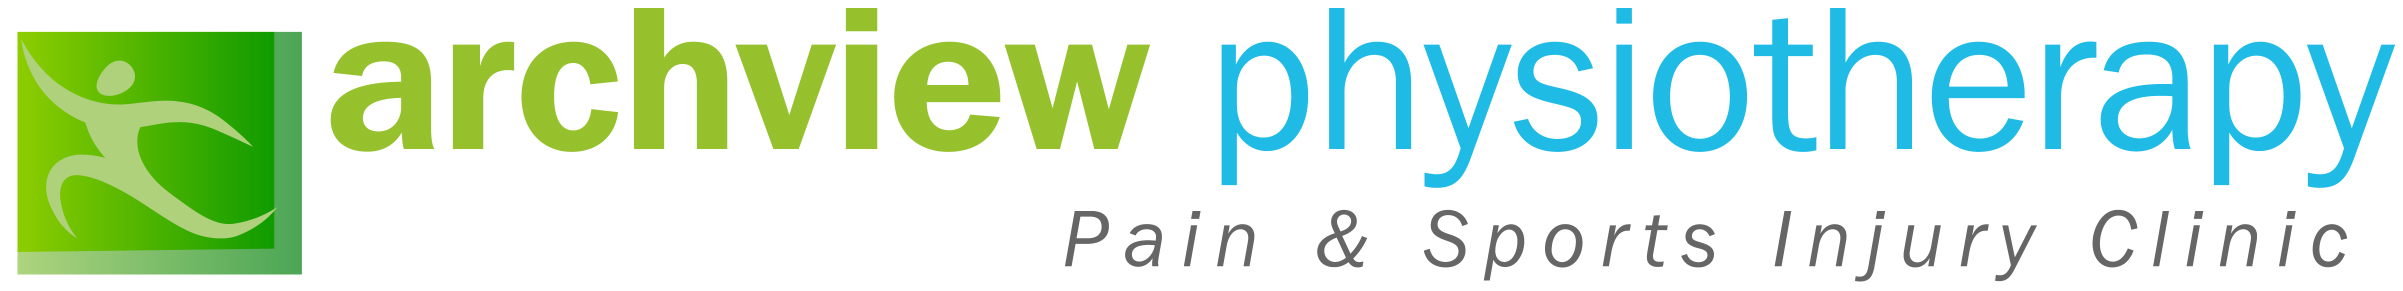 Archview Physiotherapy | Massage | Dry Needling | Pilates